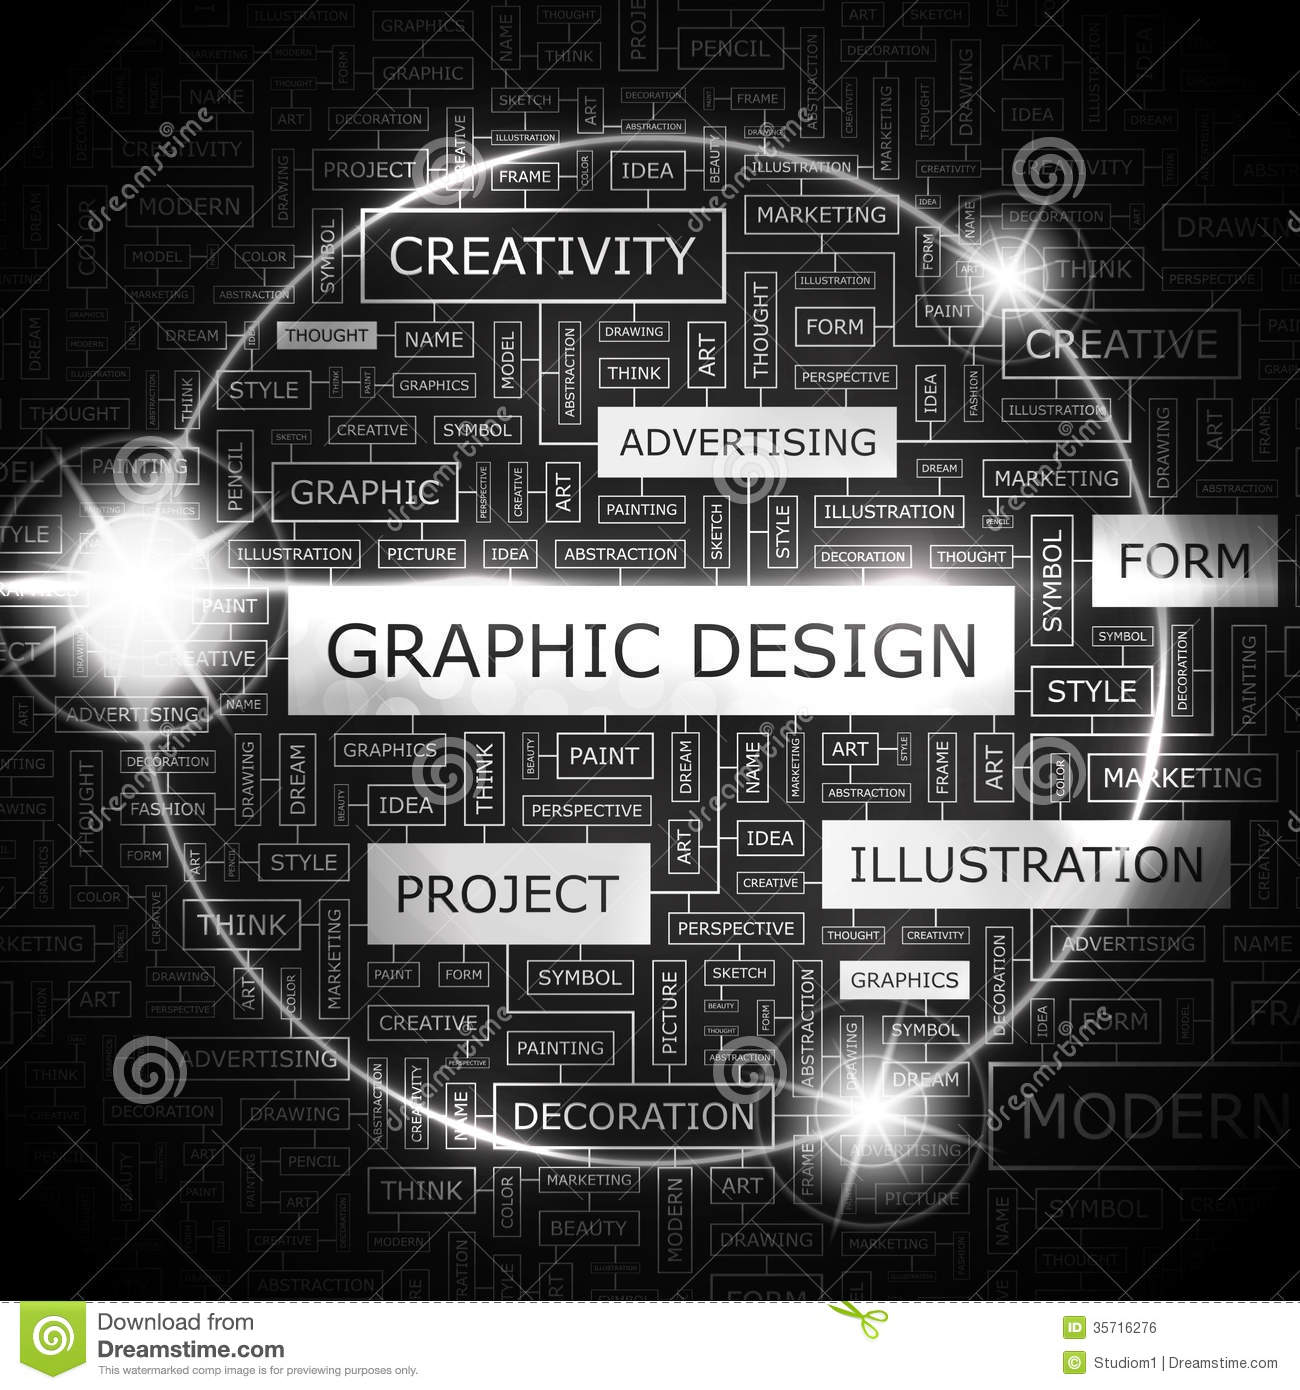 All graphics newest royalty free stock photos stock illustrations - Royalty Free Stock Photo